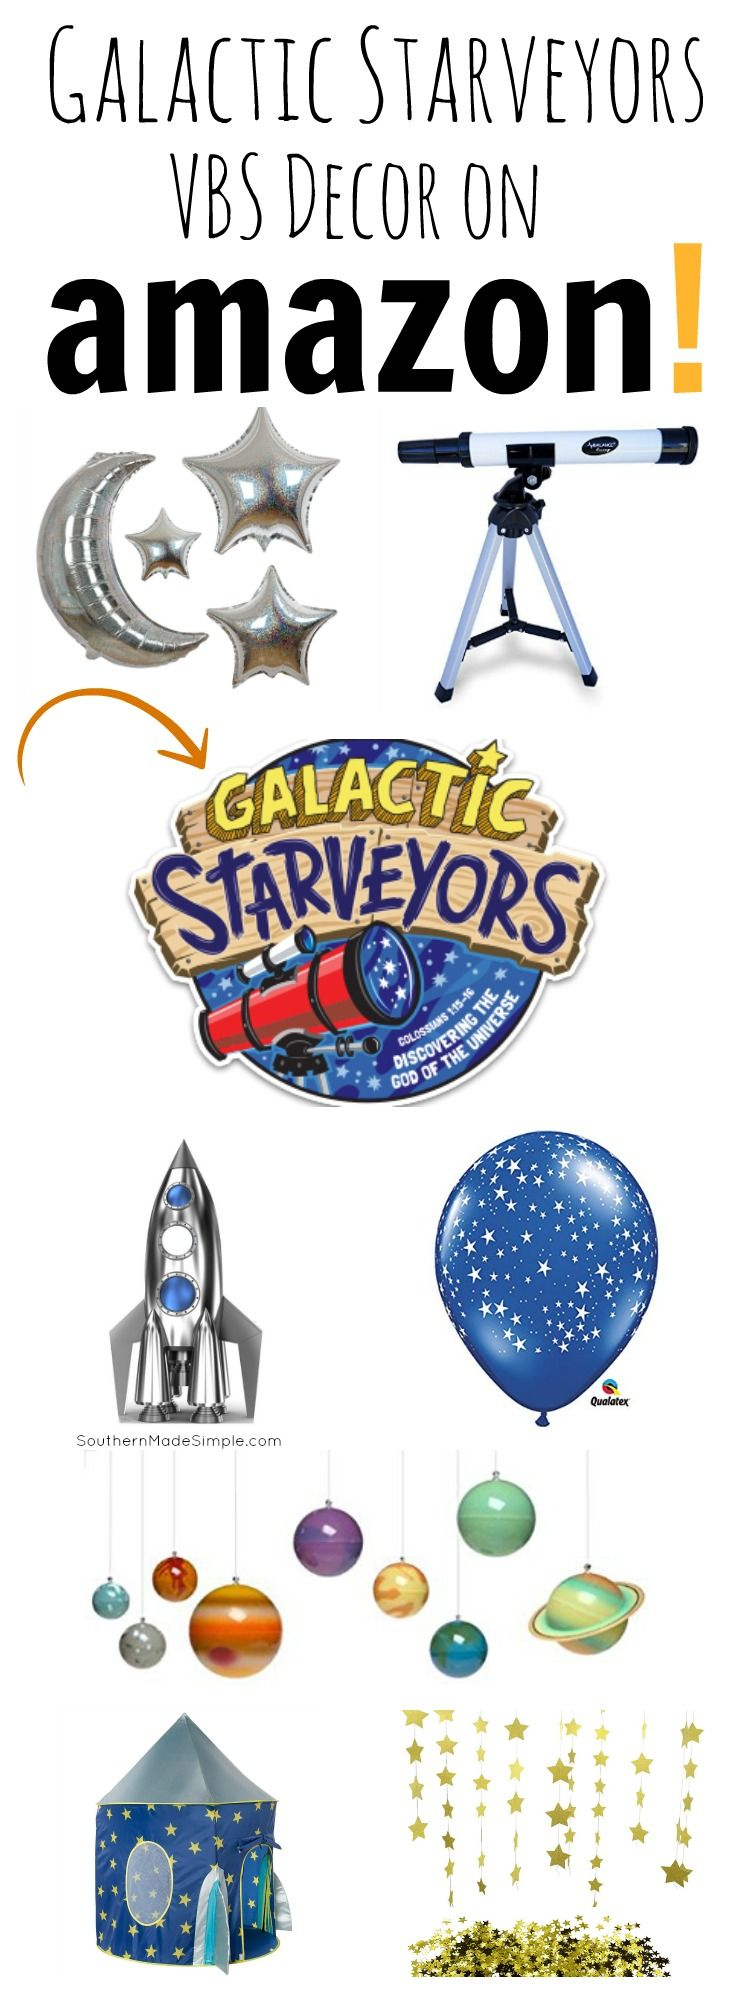 Looking for Galactic Starveyors VBS decor? Need some ideas on how to decorate? Amazon has all you need to make a STELLAR scene for Lifeway's Galactic Starveyors Vacation Bible School 2017 Theme!